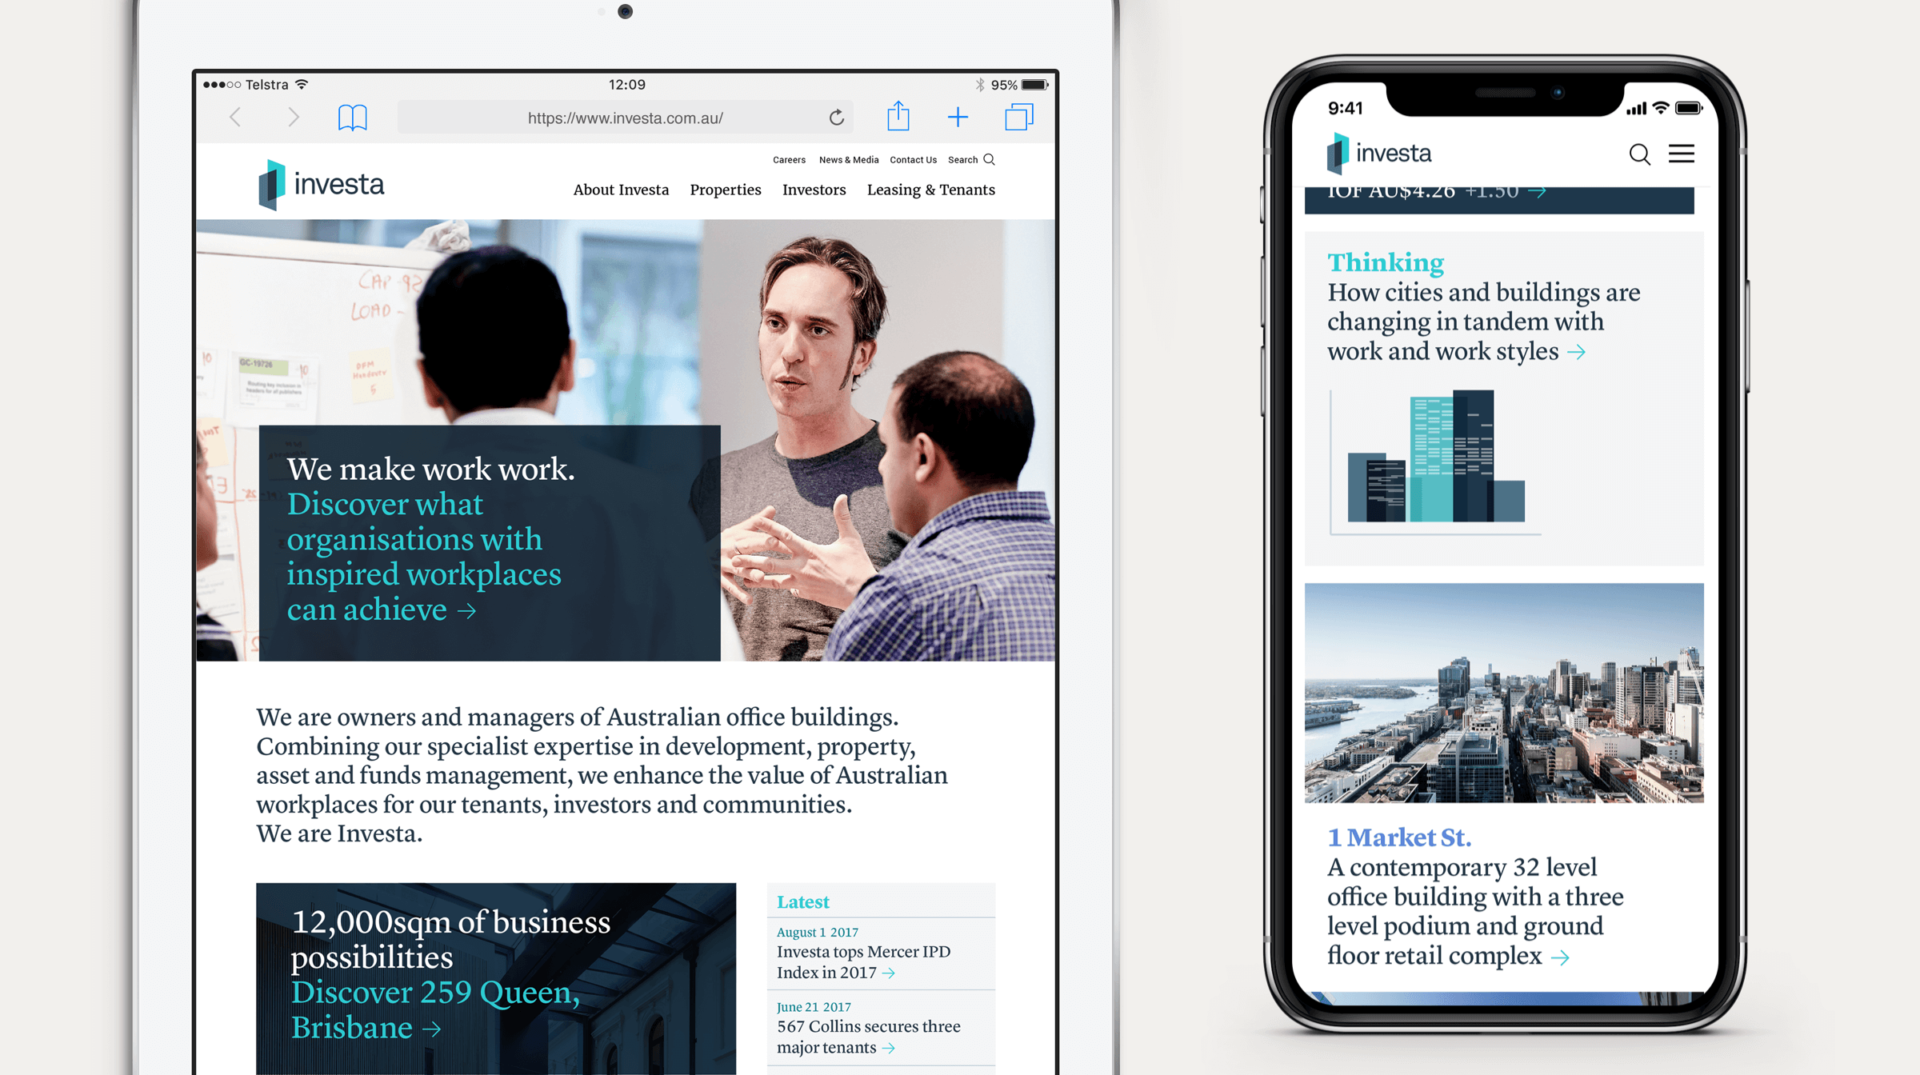 Investa's website displayed on an iPad and iPhone